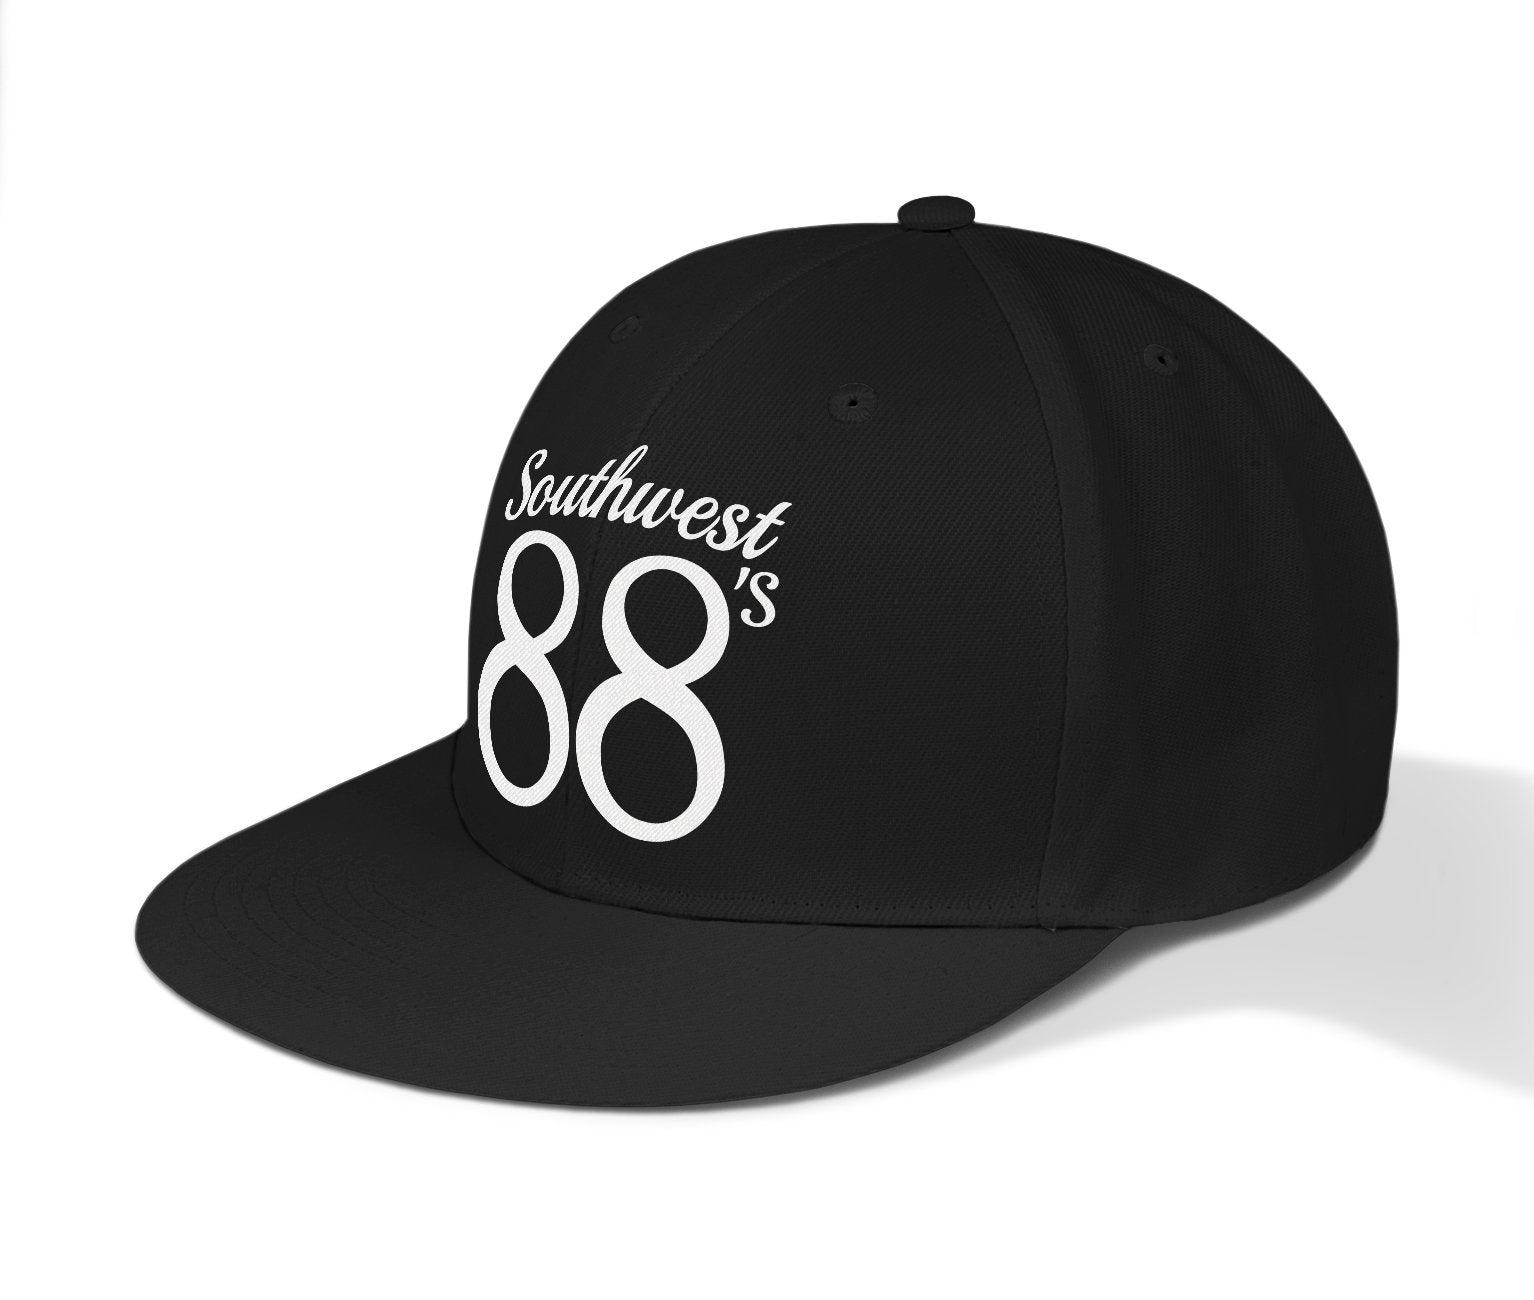 Southwest 88's - Snapback Southwest 88's Adults